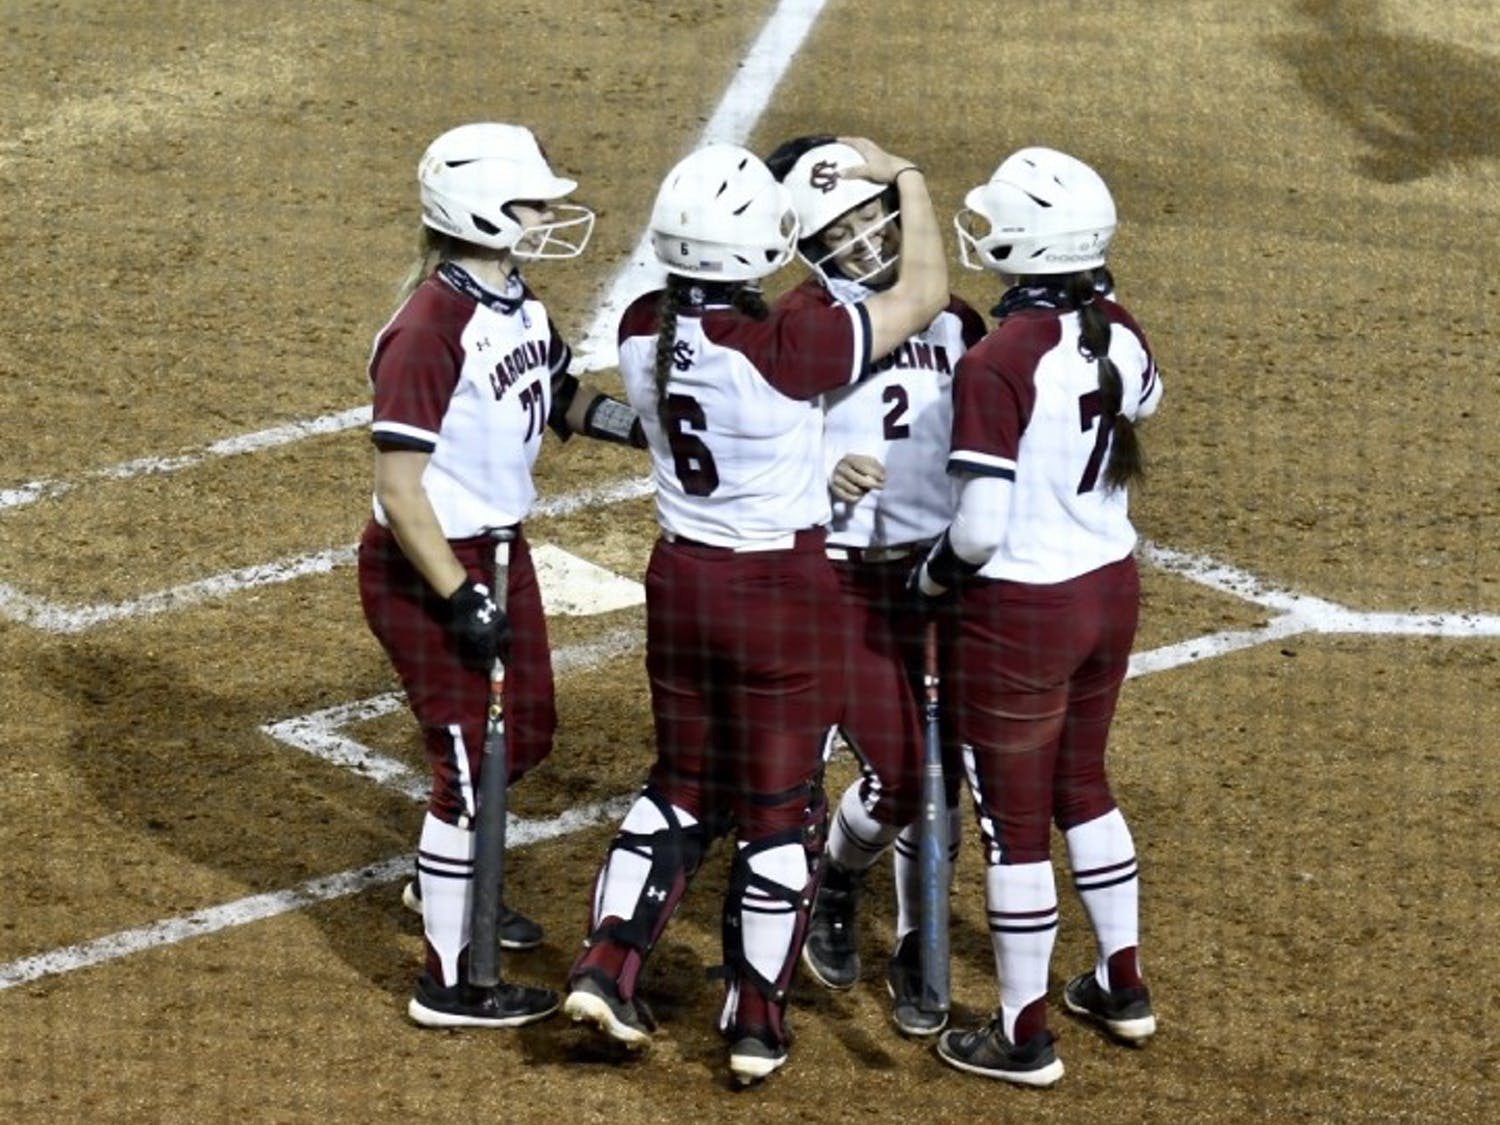 Graduate student shortstop Kenzi Maguire celebrates with teammates after hitting a home run in the second inning Wednesday. South Carolina beat Winthrop 10-1.